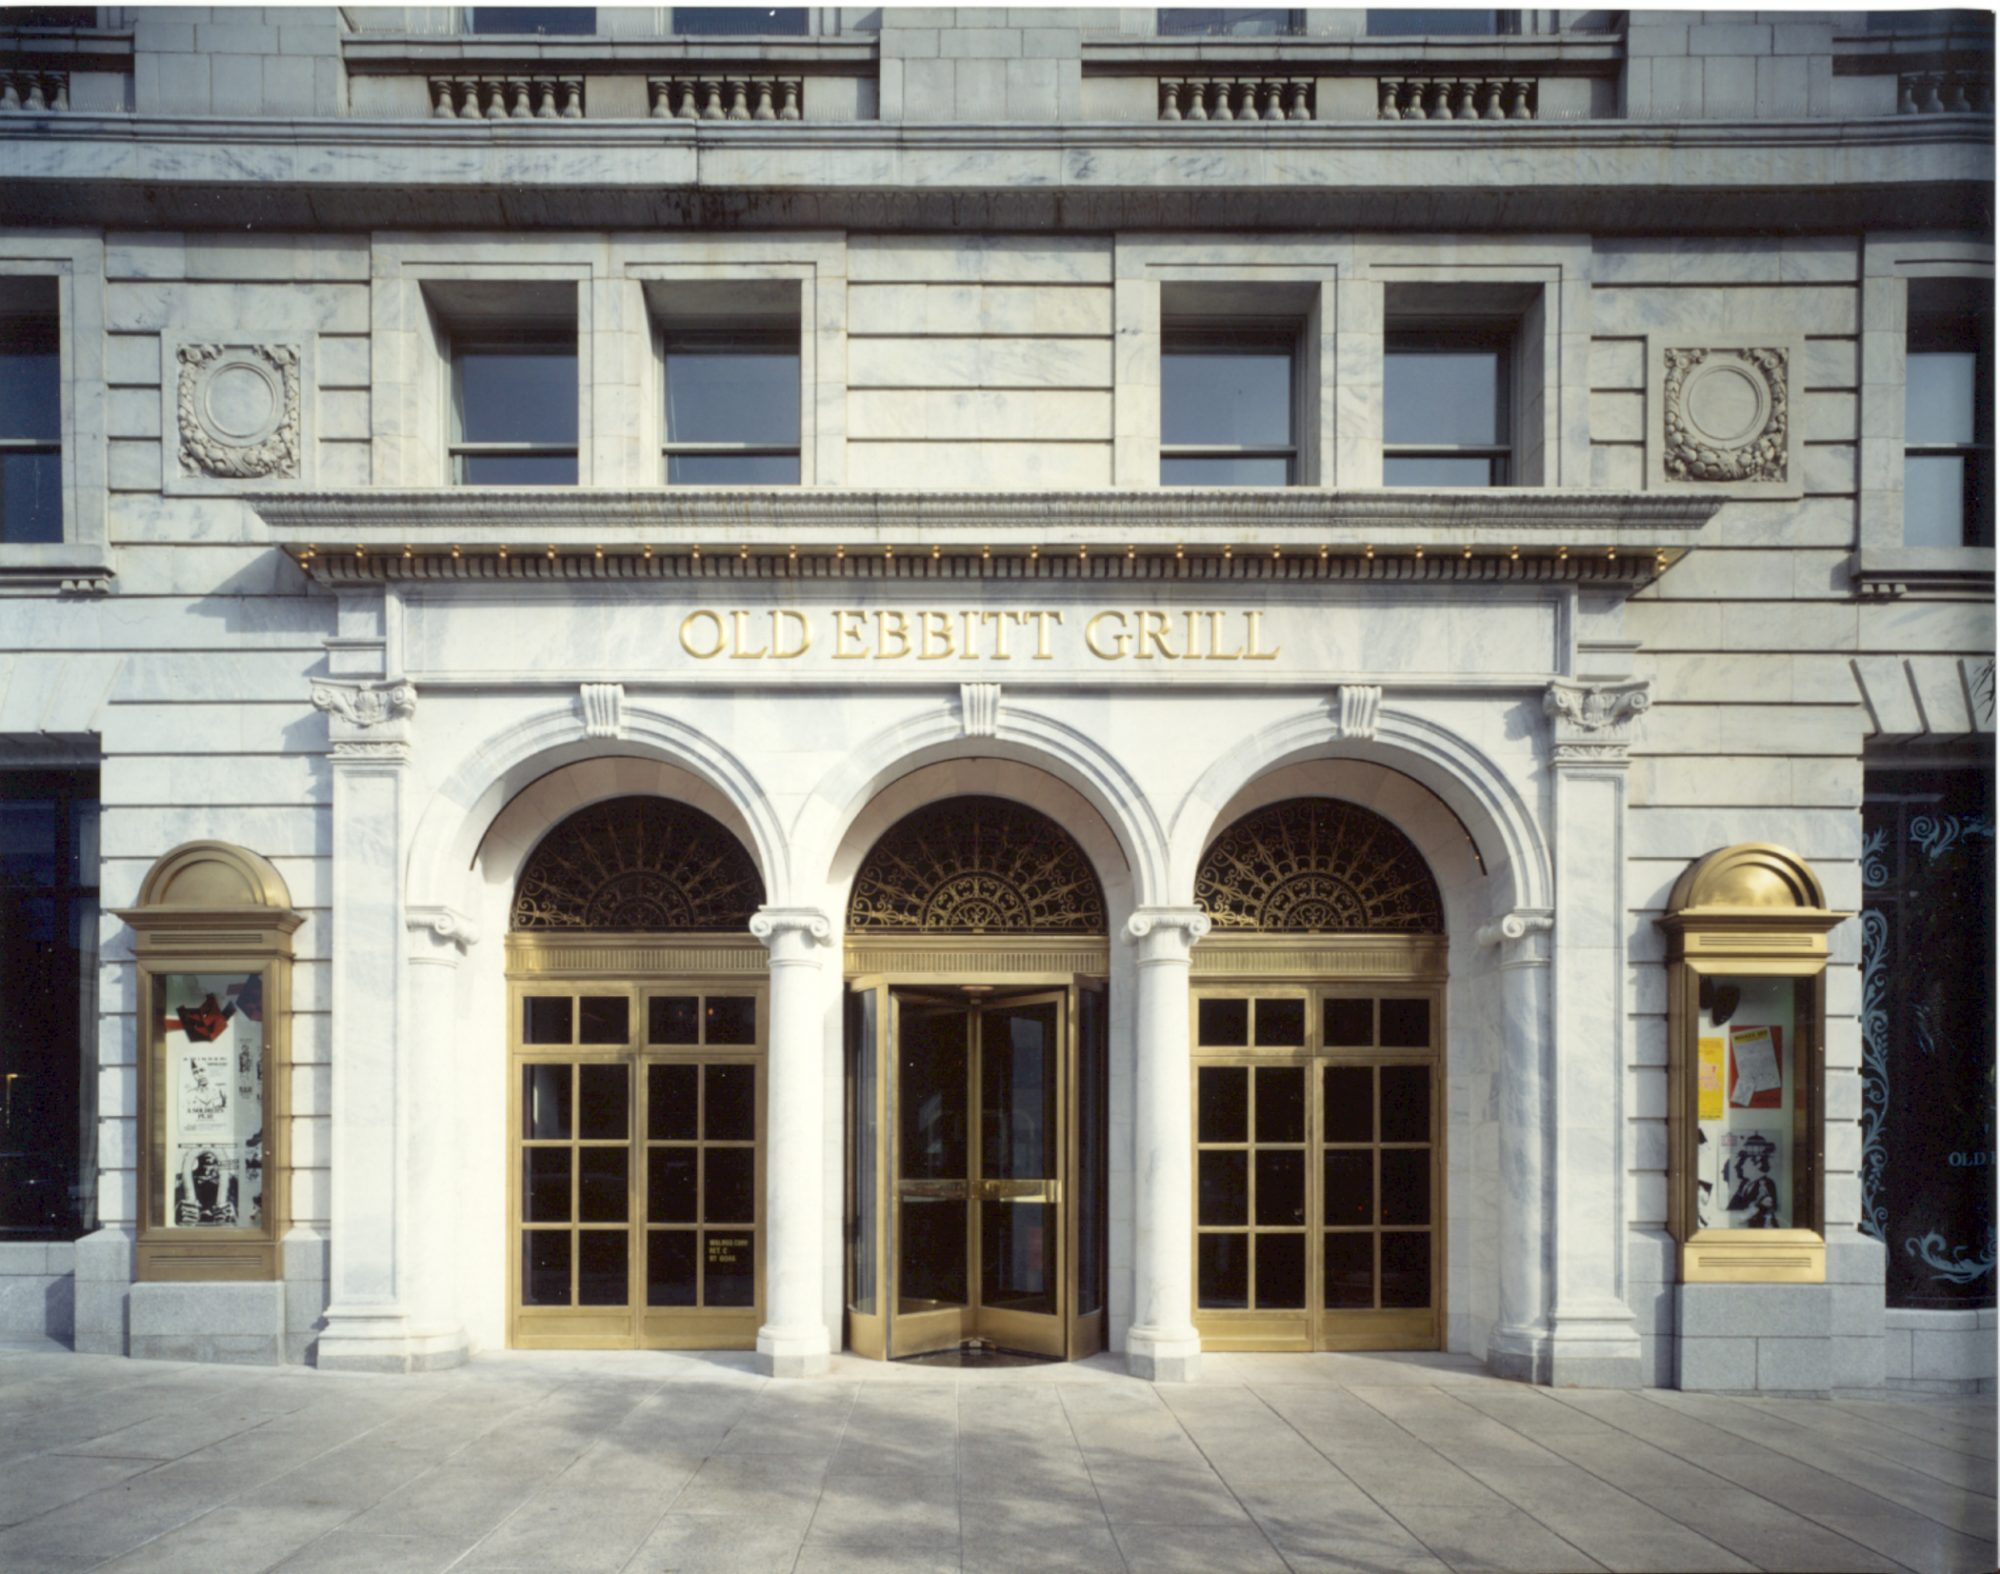 RX_1904 The South's Best Restaurants in Every State_Washington, D.C.: Old Ebbitt Grill